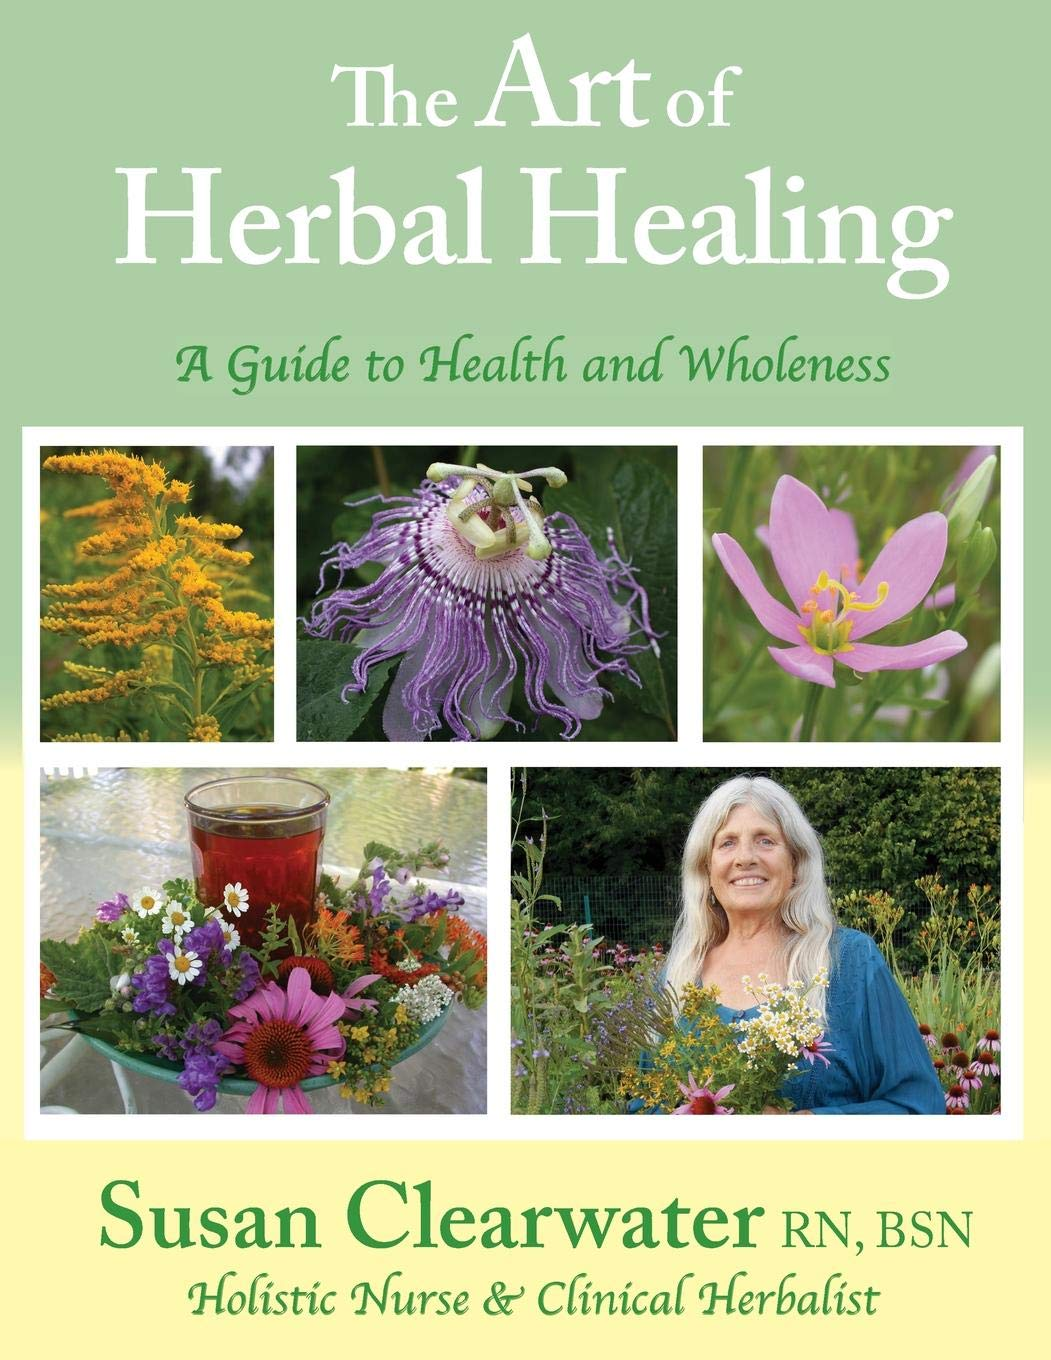 The Art of Herbal Healing: A Guide to Health and Wholeness